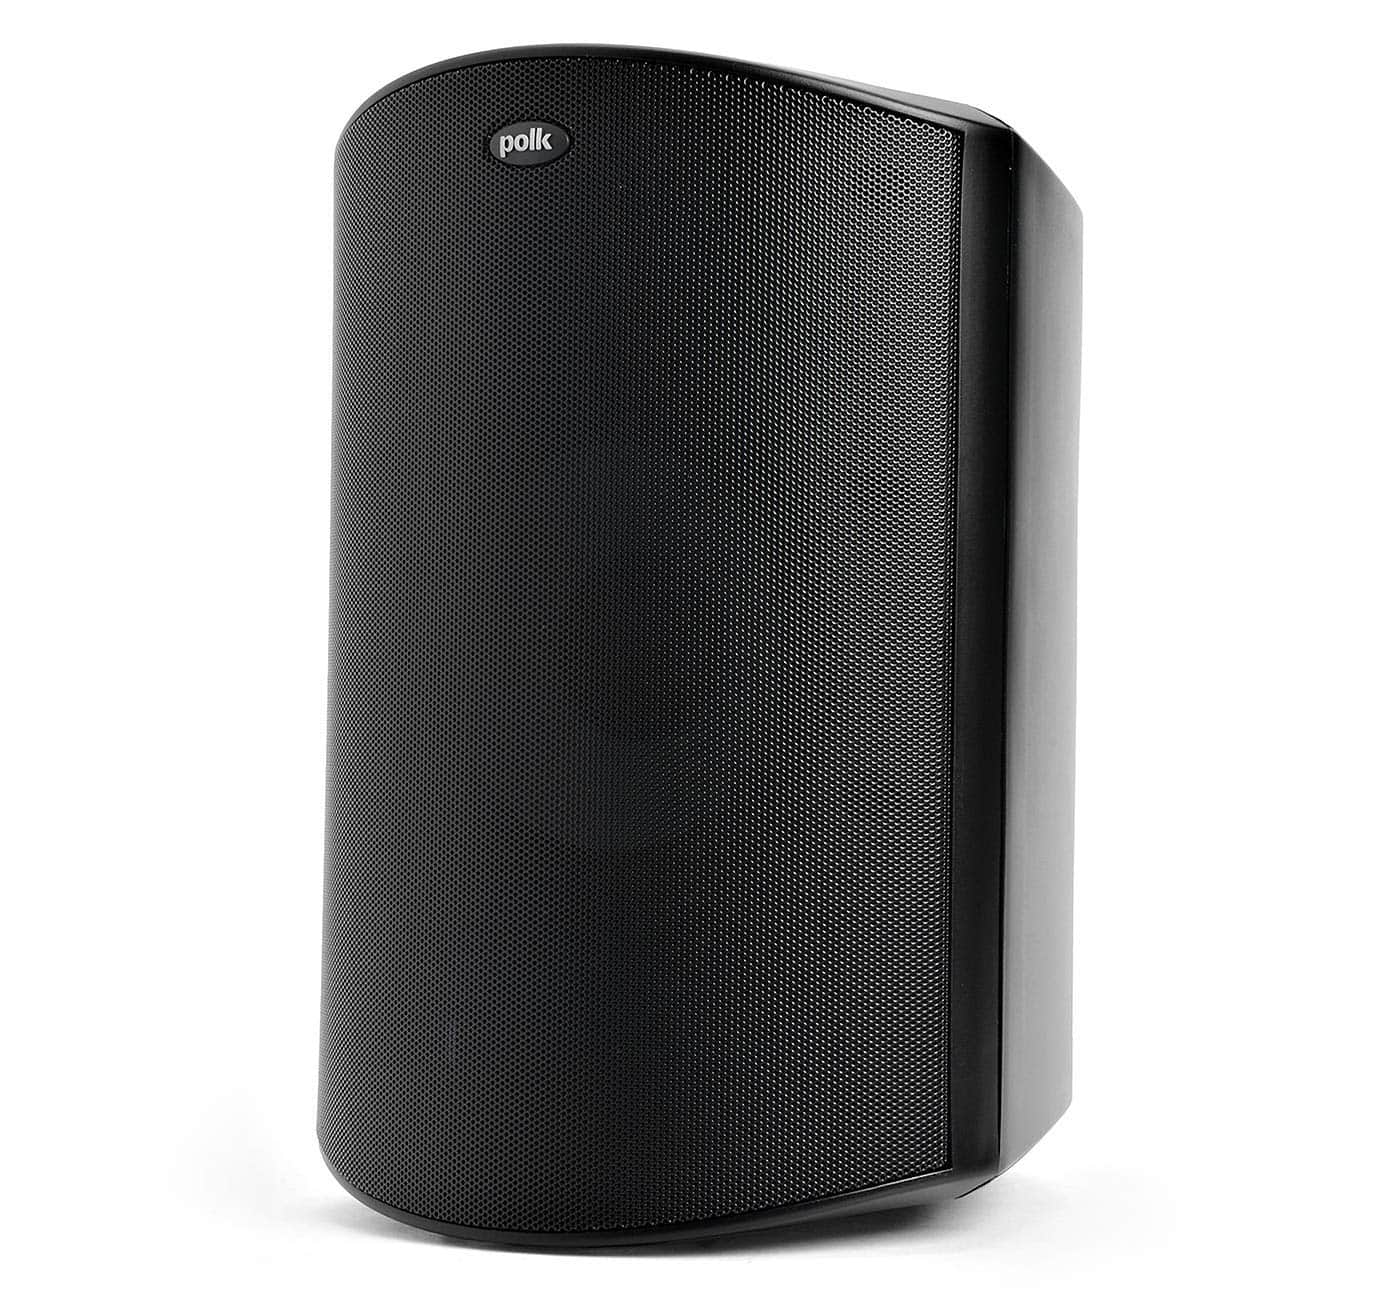 Polk Audio Atrium 8 SDI Flagship Outdoor Speaker (Single, Black)   Powerful Bass & Broad Sound Coverage   Withstands Extreme Weather & Temperature $135.44